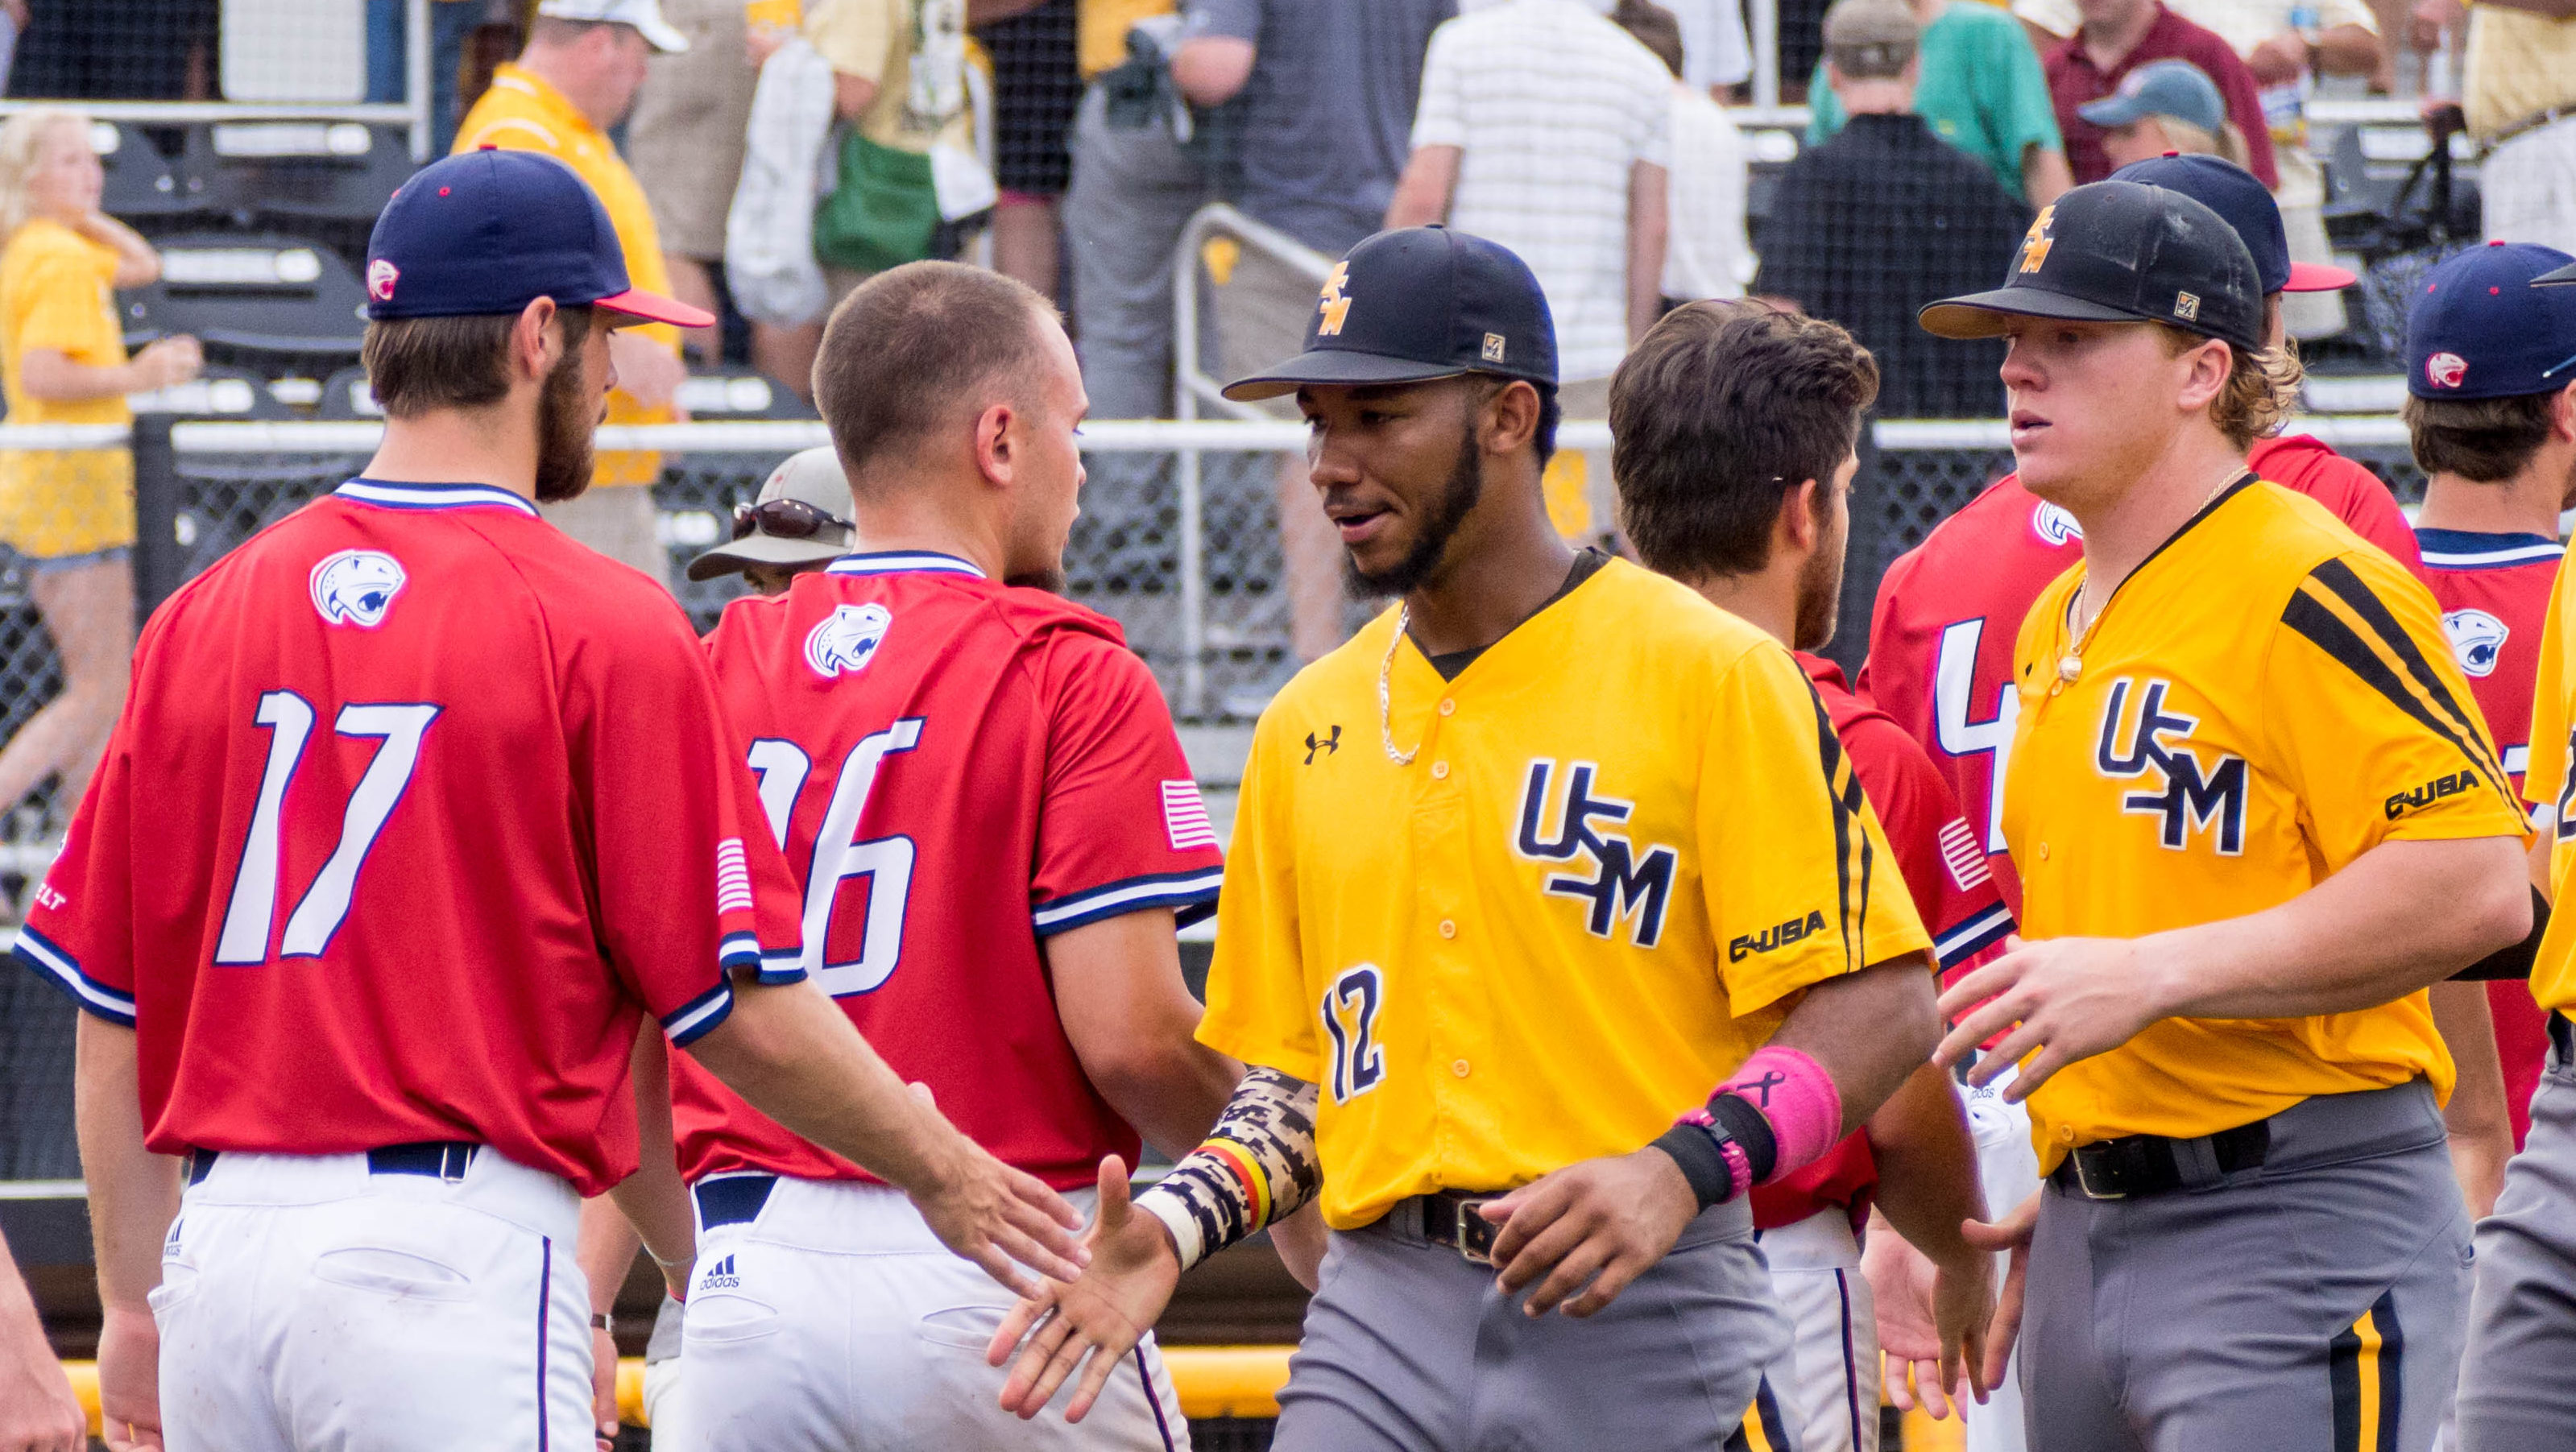 Southern Miss reaches regional final with 8-3 win over South Alabama